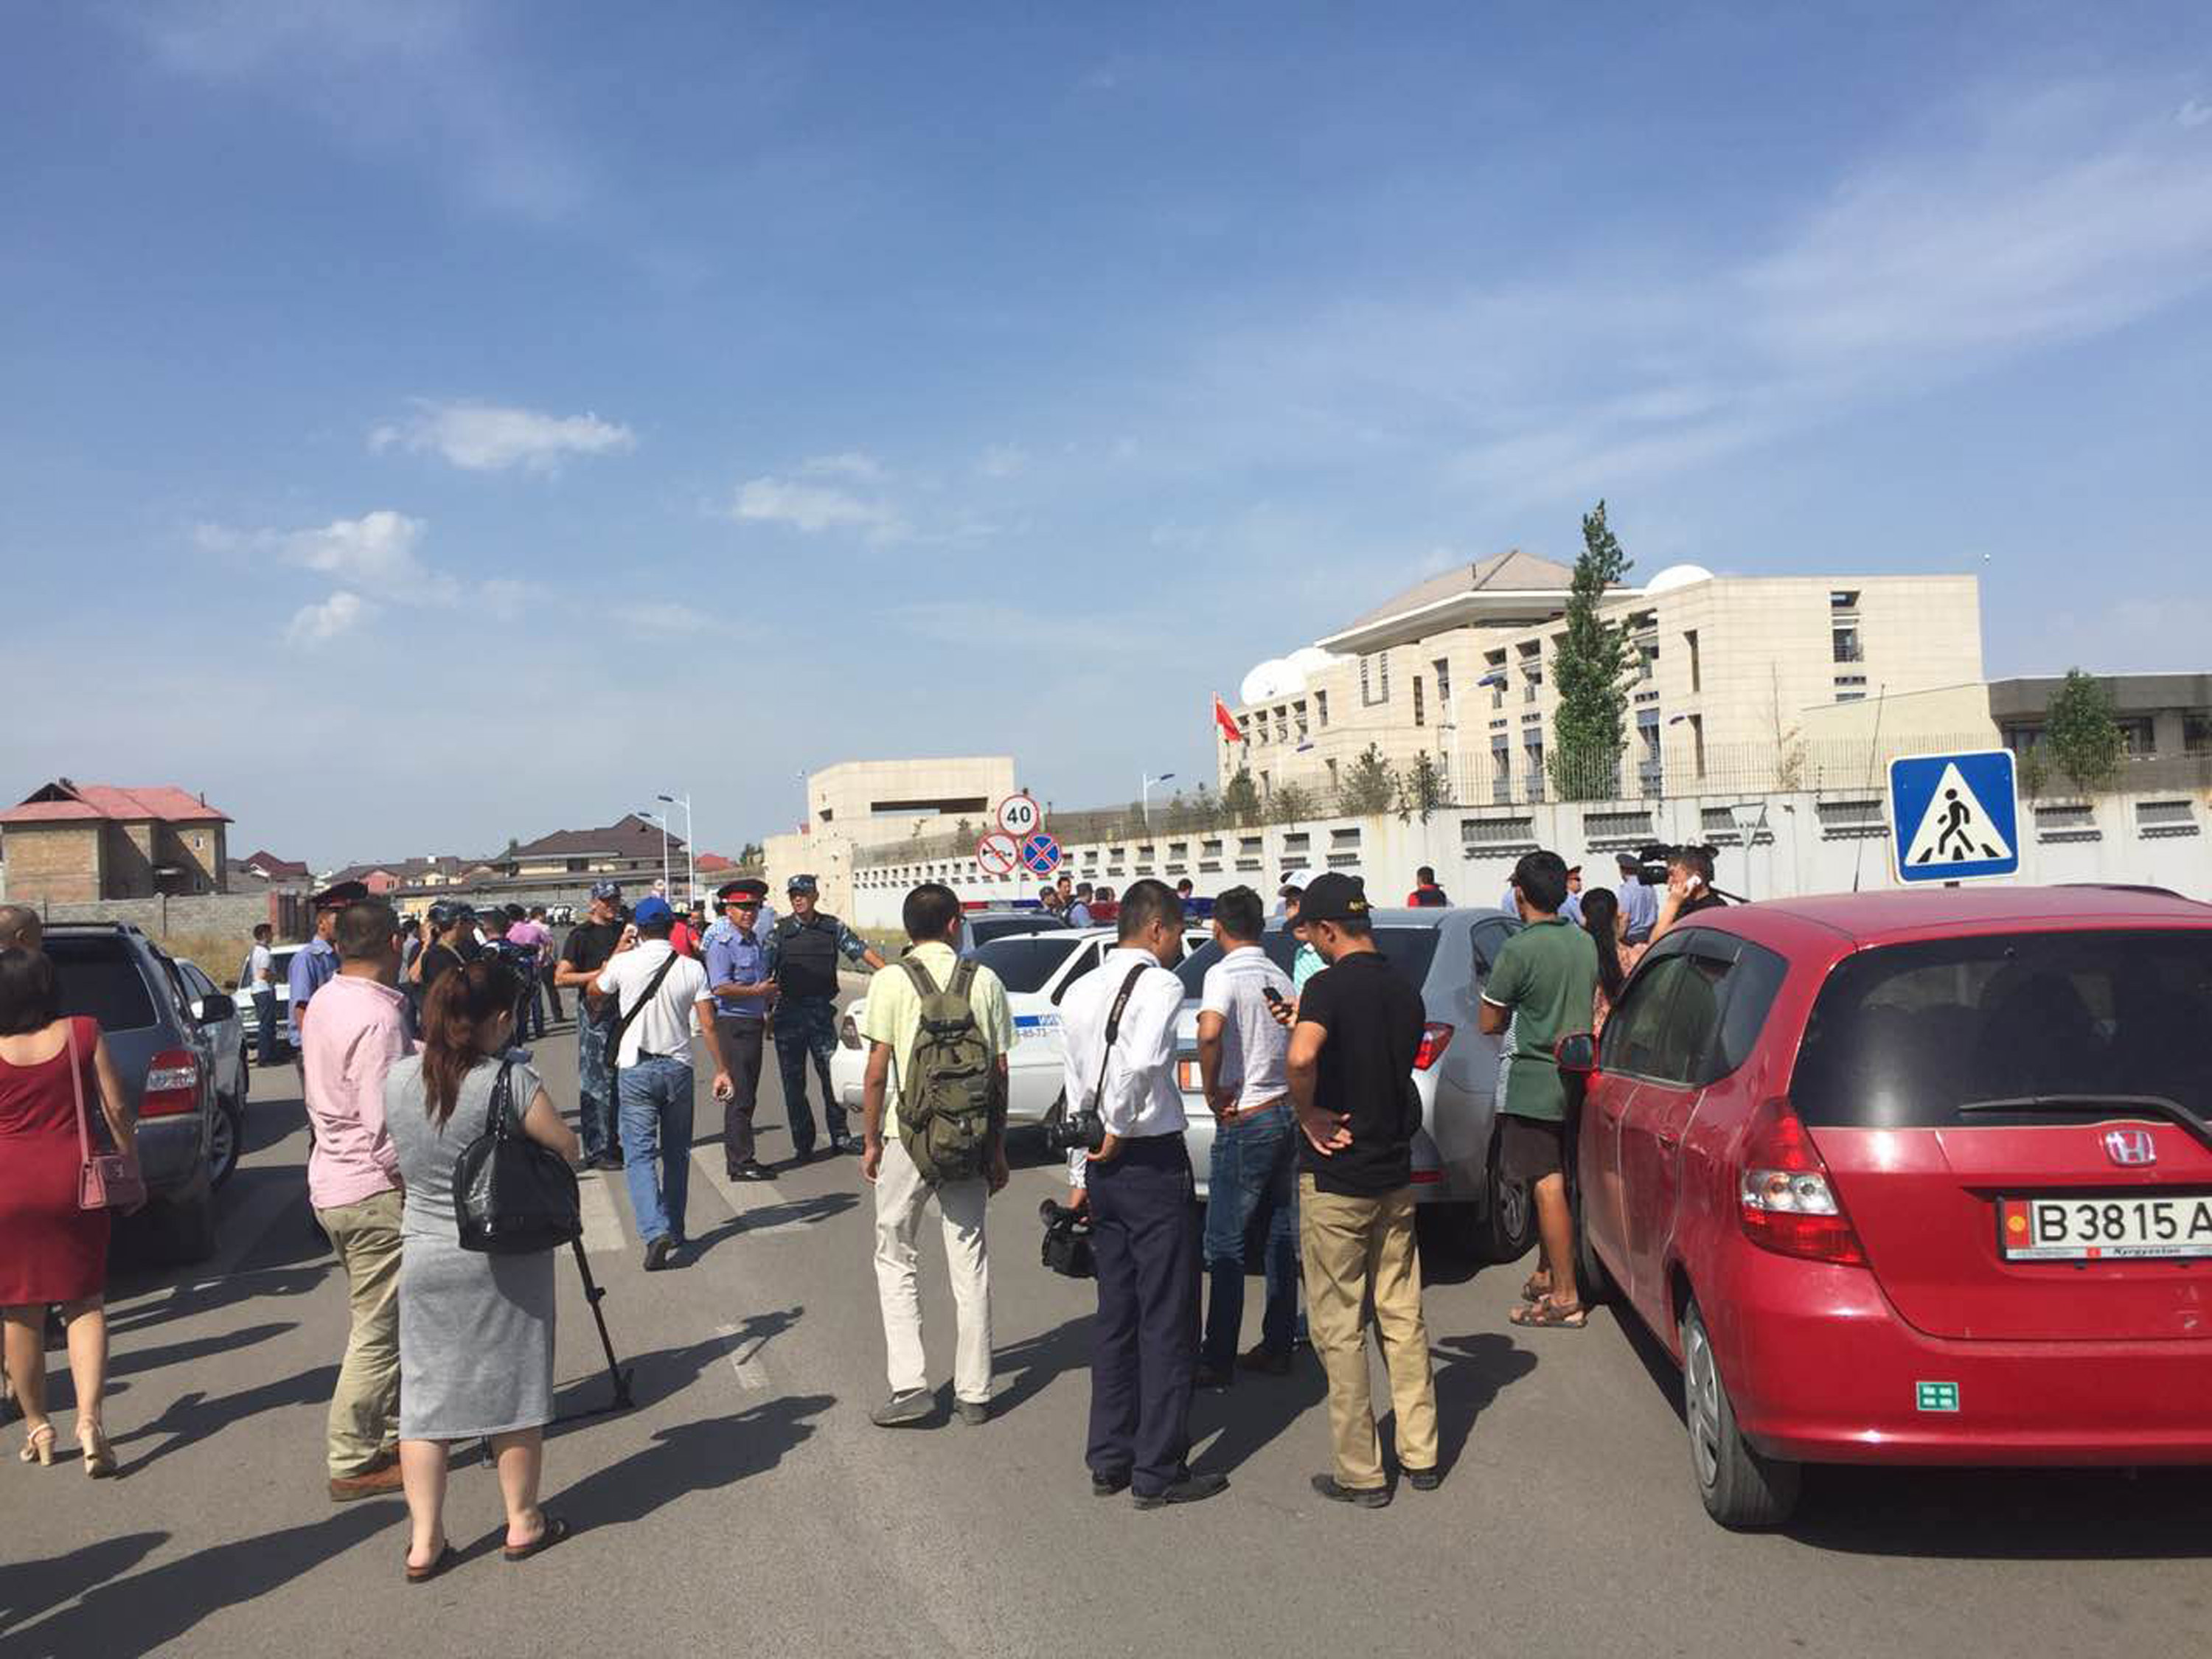 In this photo released by China's Xinhua News Agency, people gather near the site of an explosion in Bishkek, Kyrgyzstan, Tuesday, Aug. 30, 2016. Kyrgyzstan's deputy prime minister says a suicide bomber rammed his car into the gate of the Chinese embassy compound in the capital Bishkek, detonating a bomb and injuring three embassy employees.